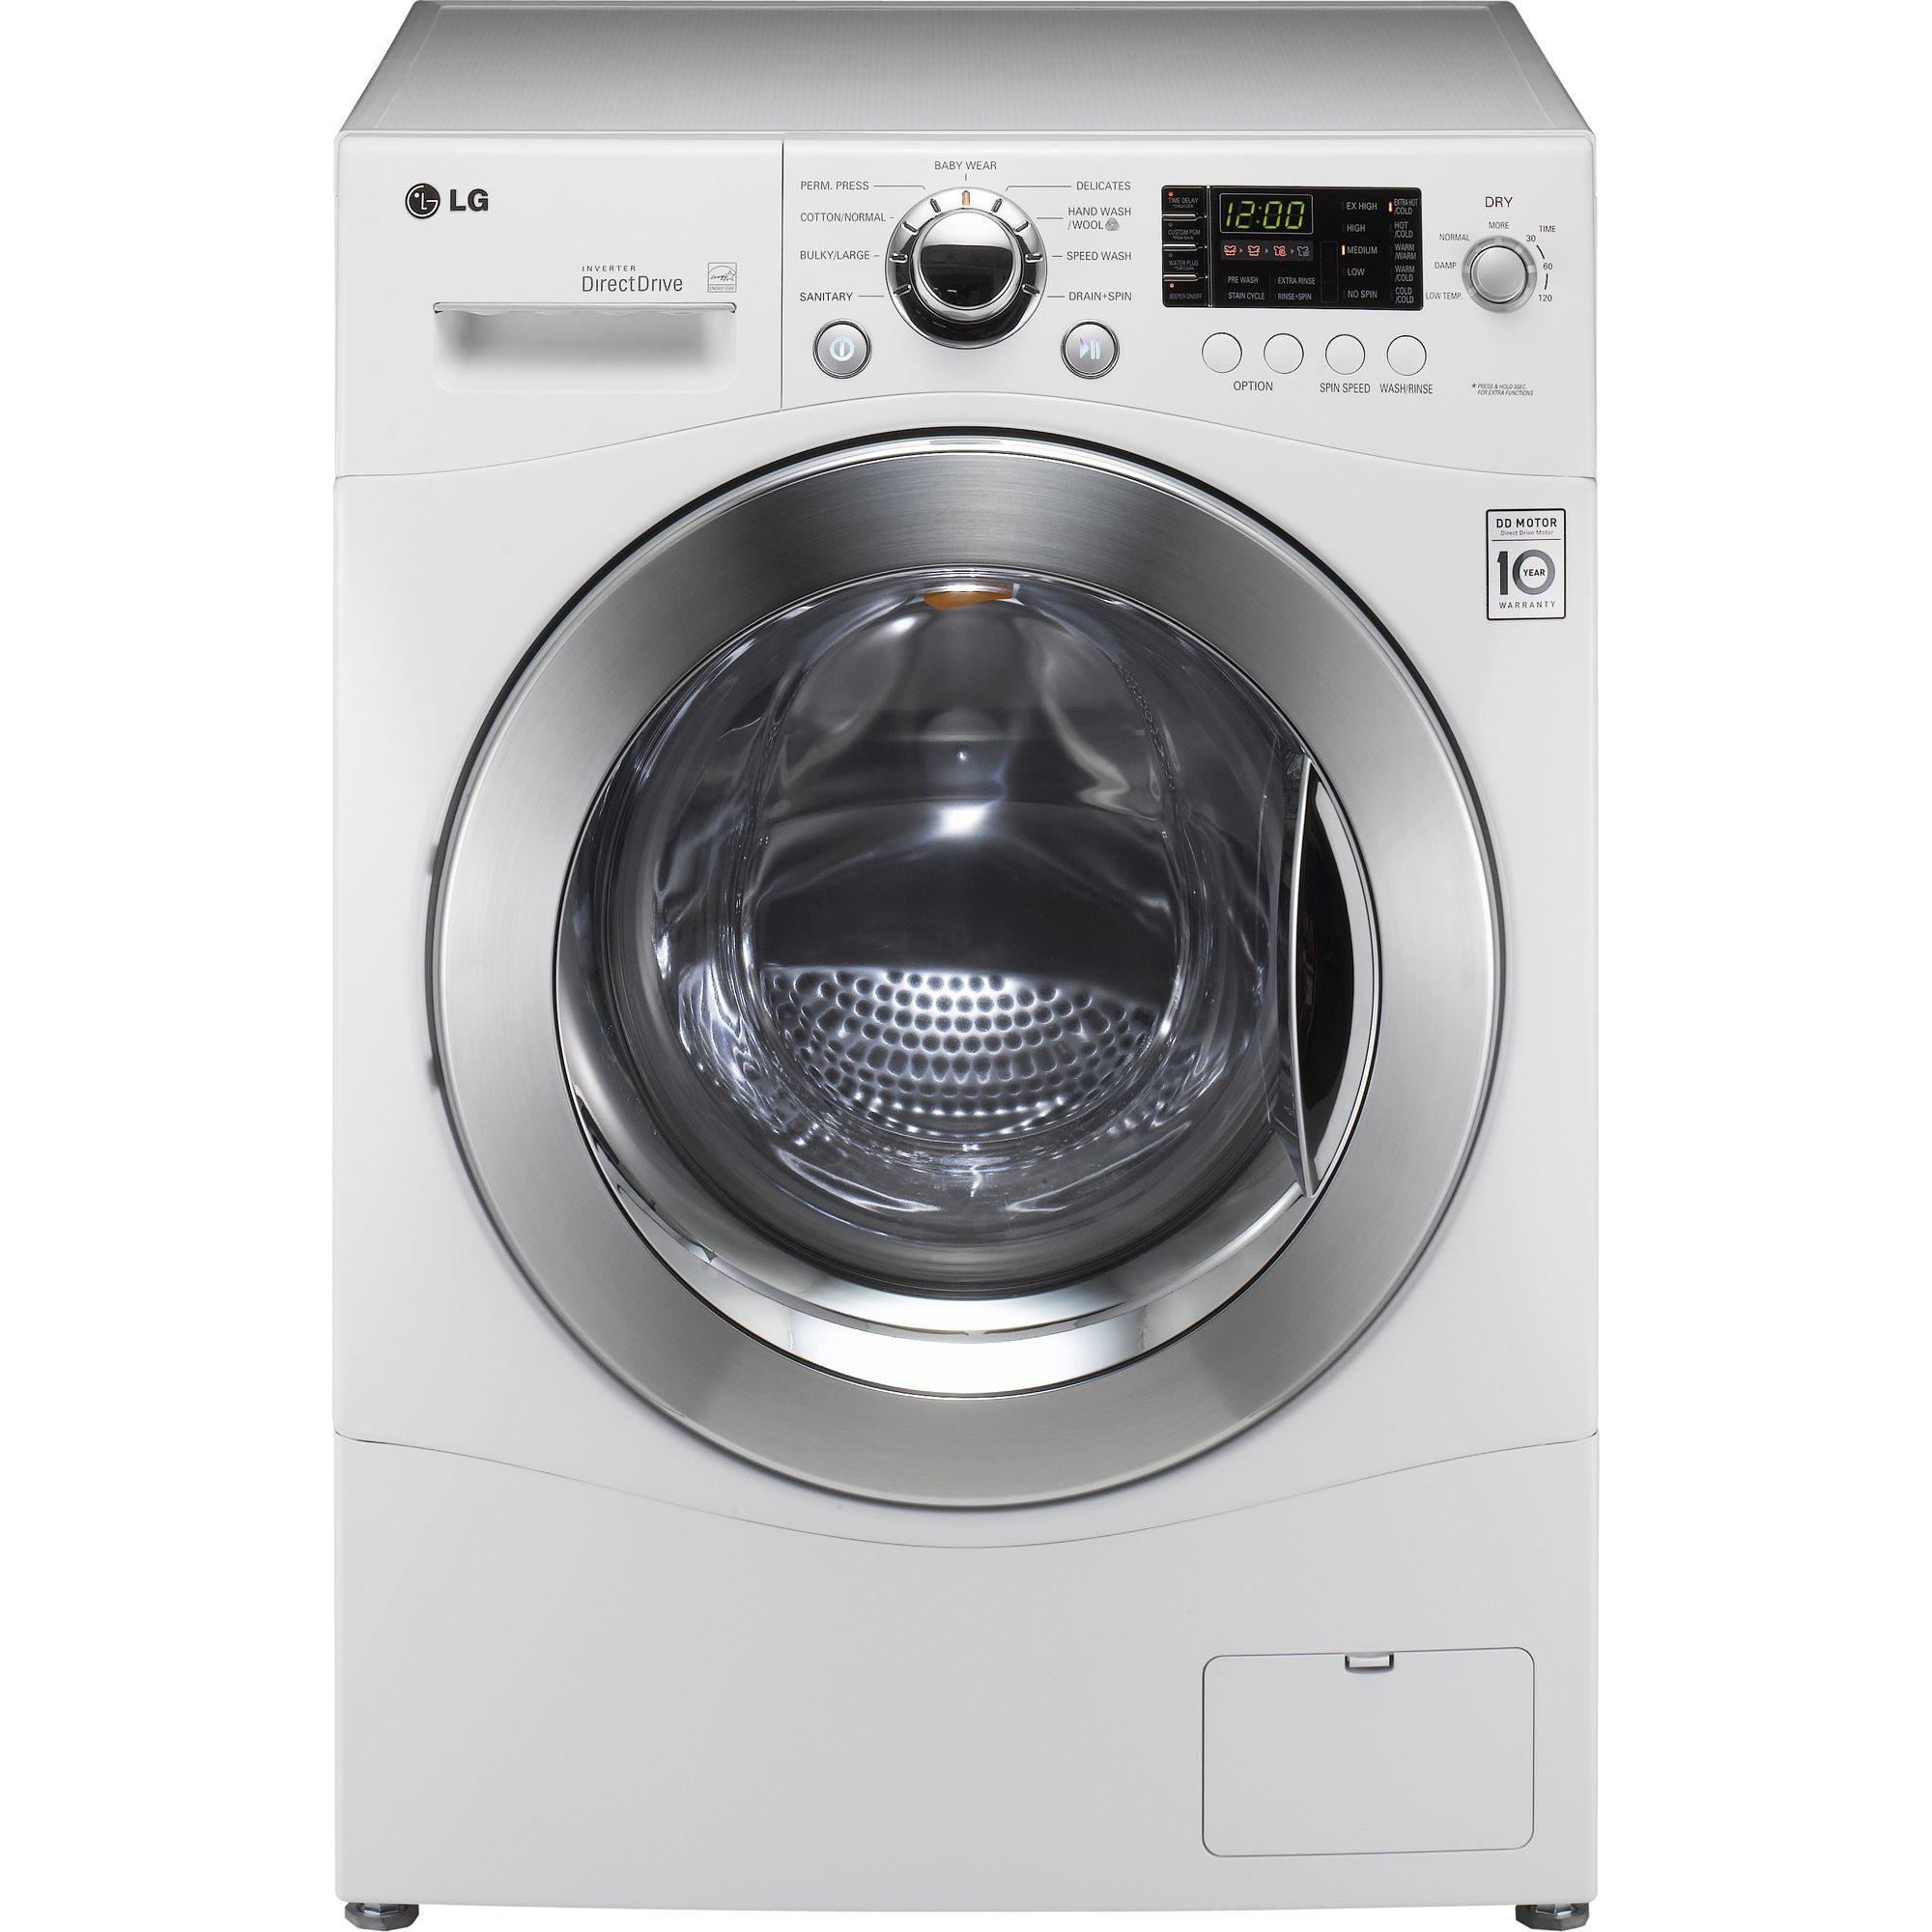 Lg Wm3455hw 2.3 Cu. Ft. -in- Washer And Dryer